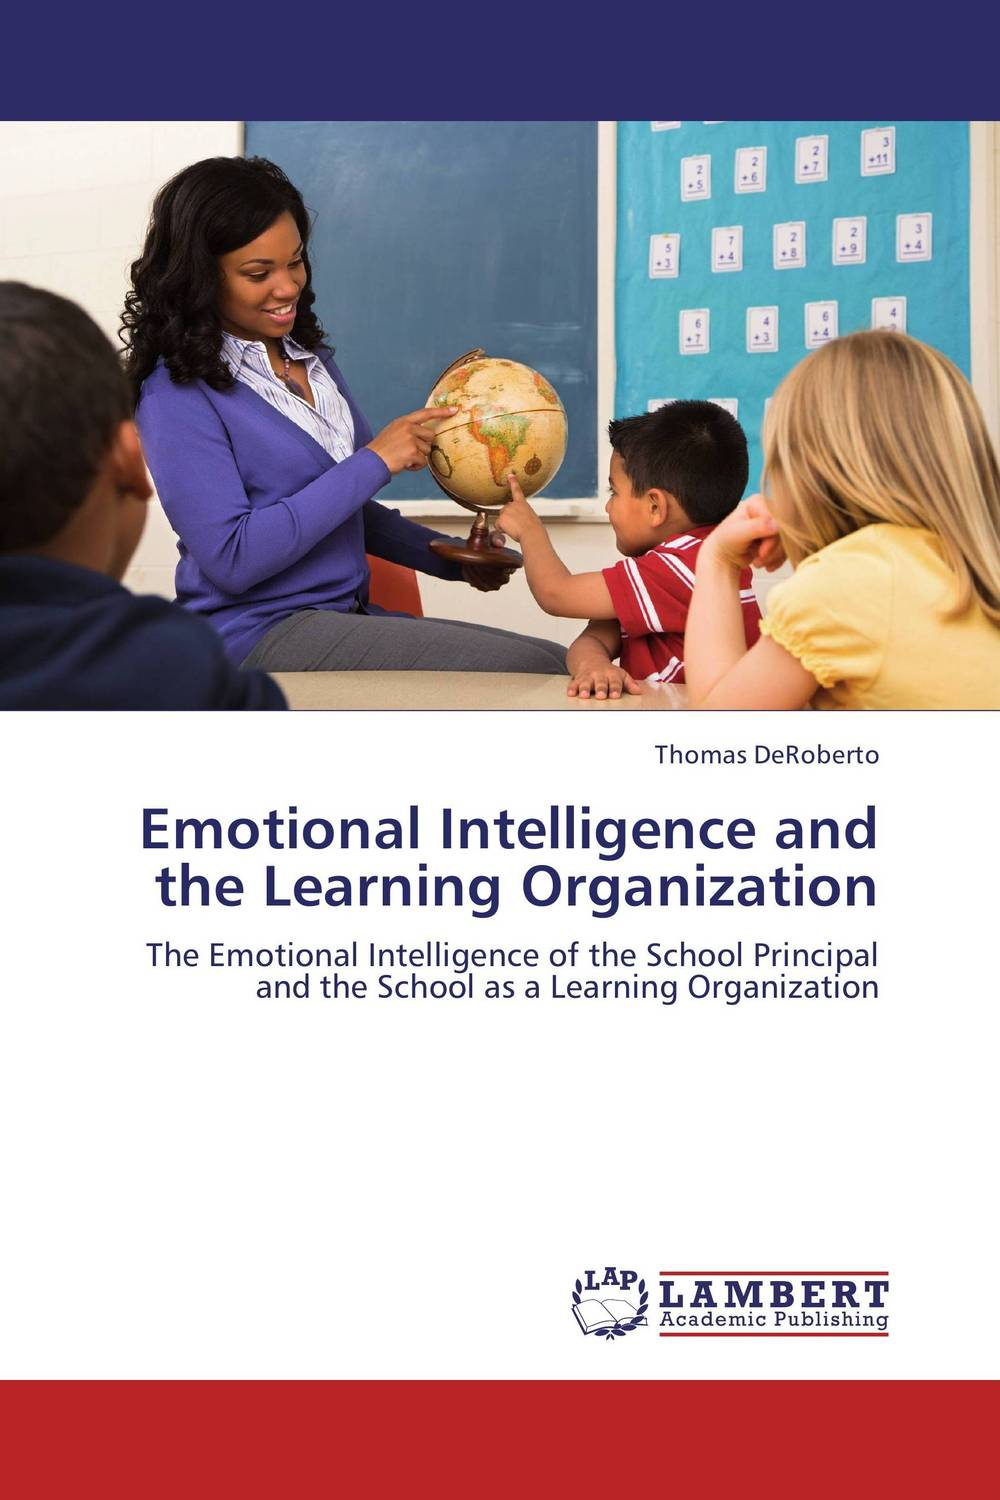 Emotional Intelligence and the Learning Organization copiers fuser unit for kyocera km 1635 2035 2550 1648 1620 2020 2050 1650 110v